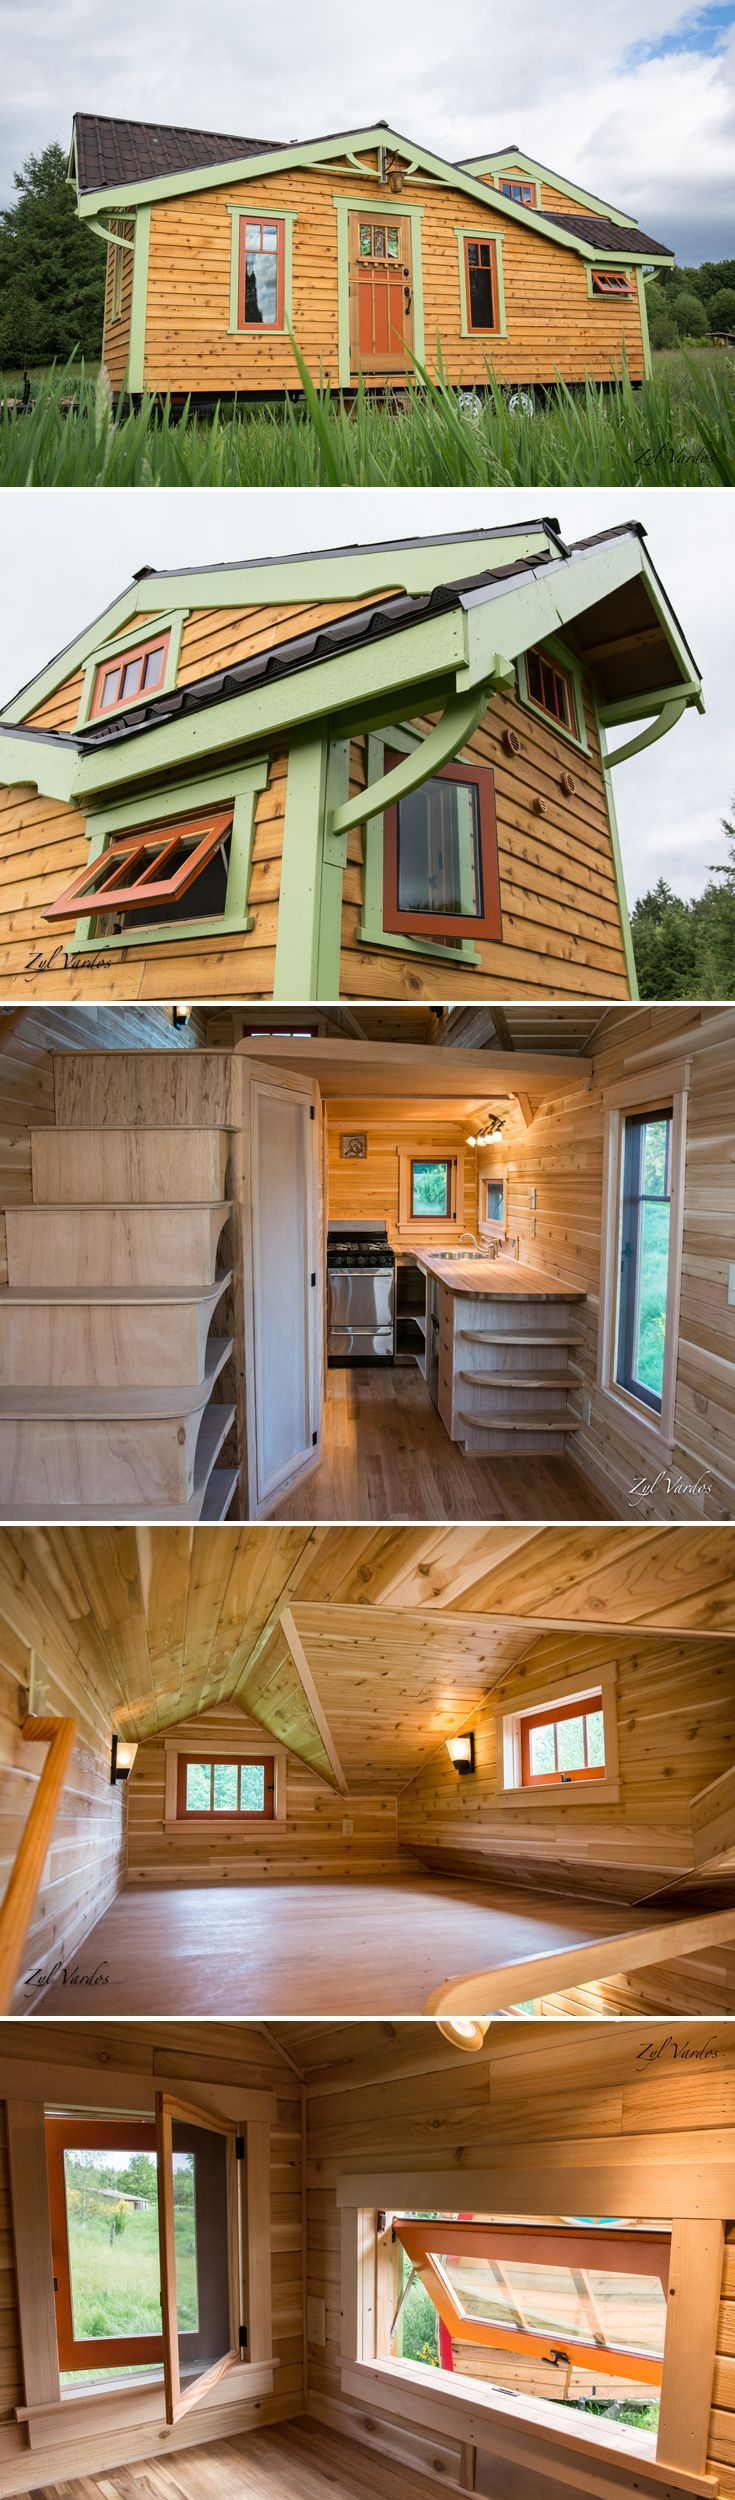 best tiny homes on wheels images on pinterest small houses